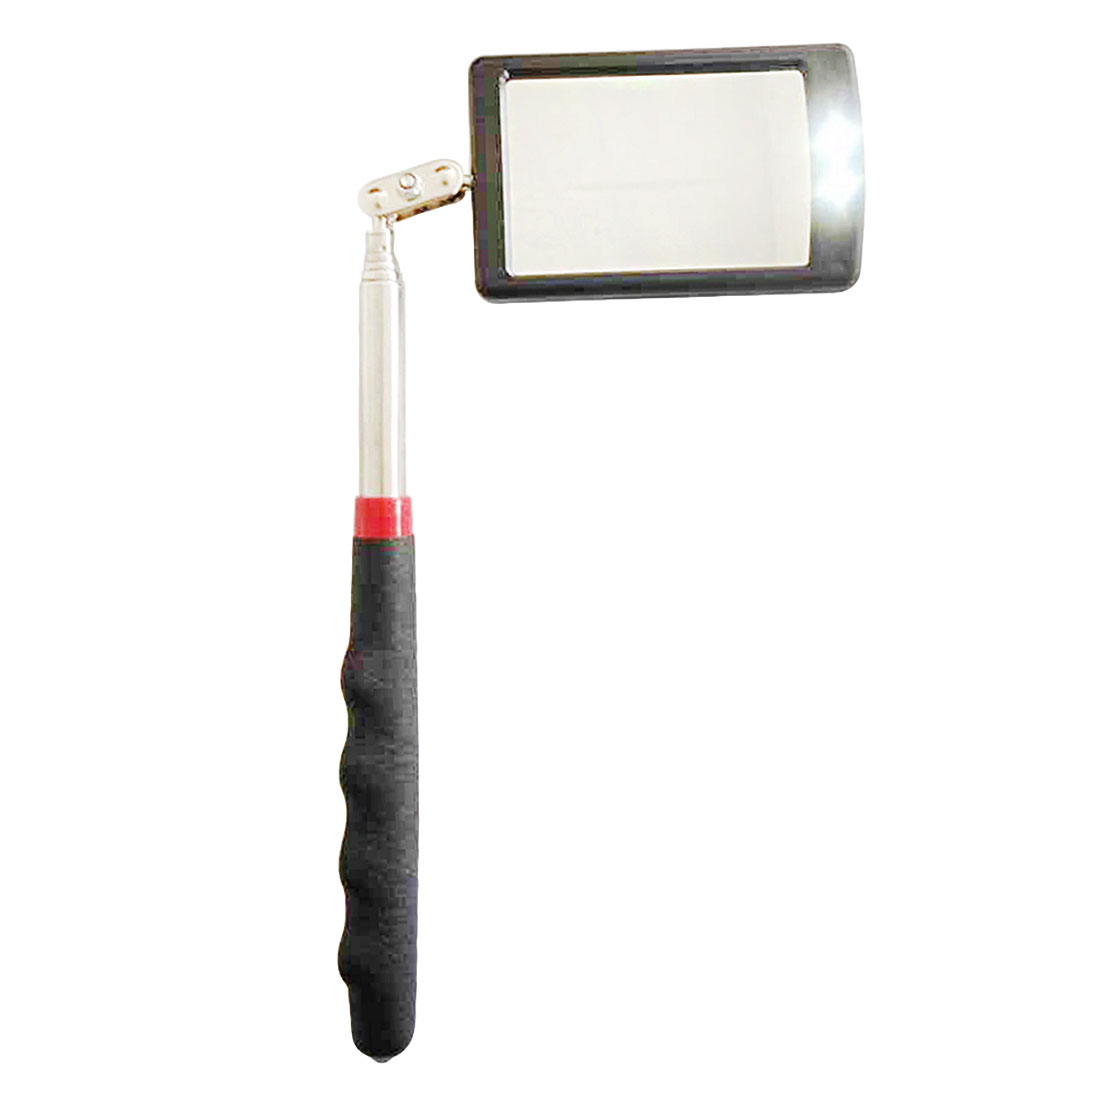 Hot!Automotive Telescopic Detection Lens Telescoping Inspection Mirror Extending Car Angle View Pen Flexible Adjustable